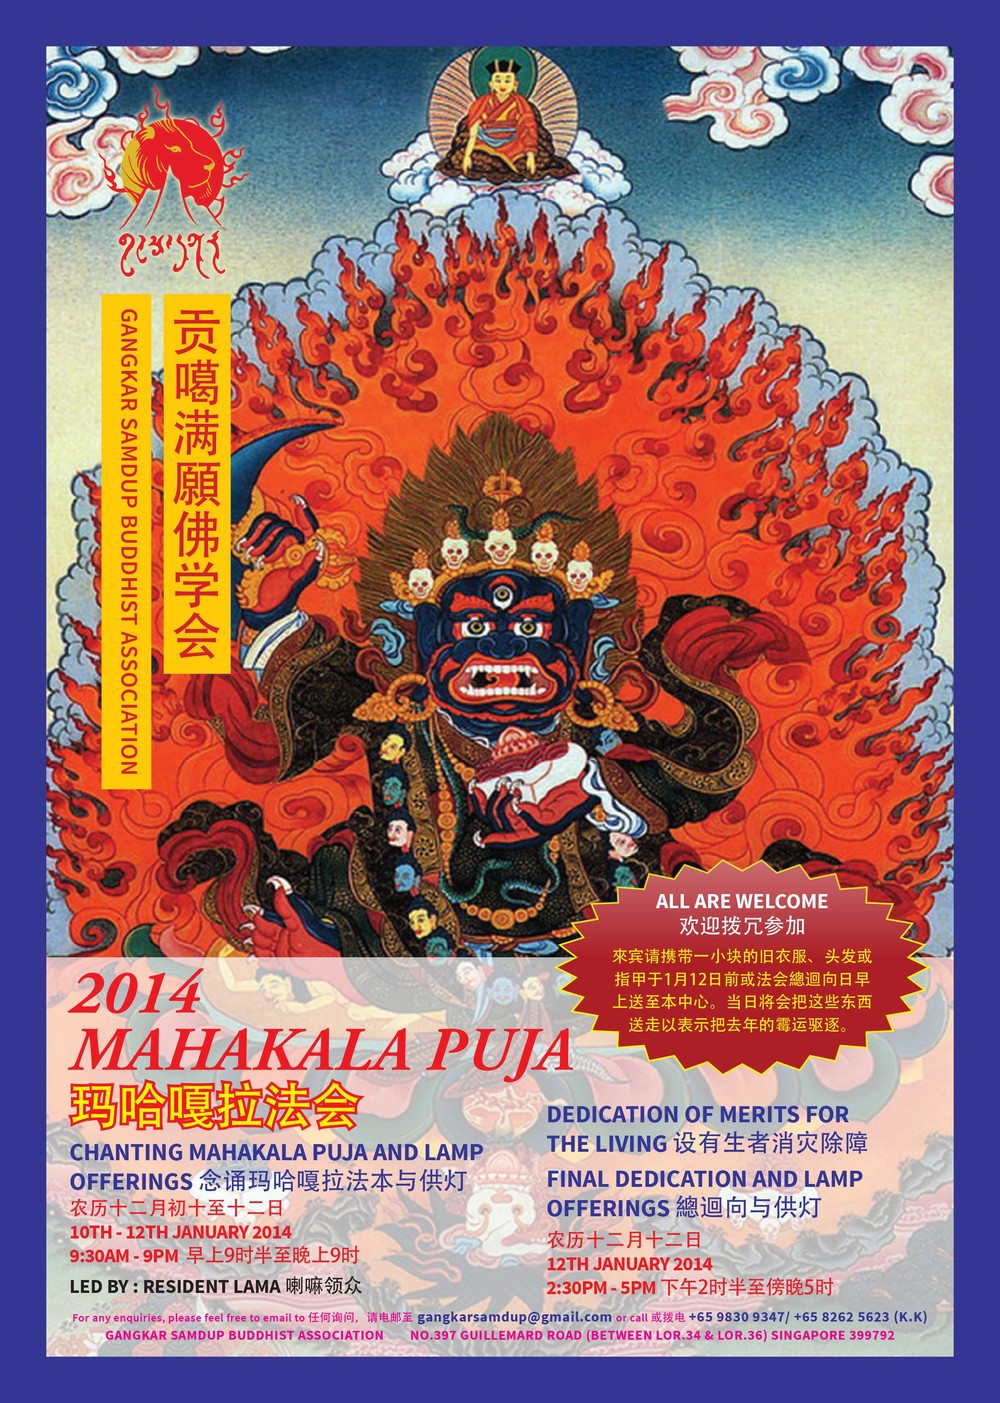 2014 Mahakala Puja - Welcome all to join us.